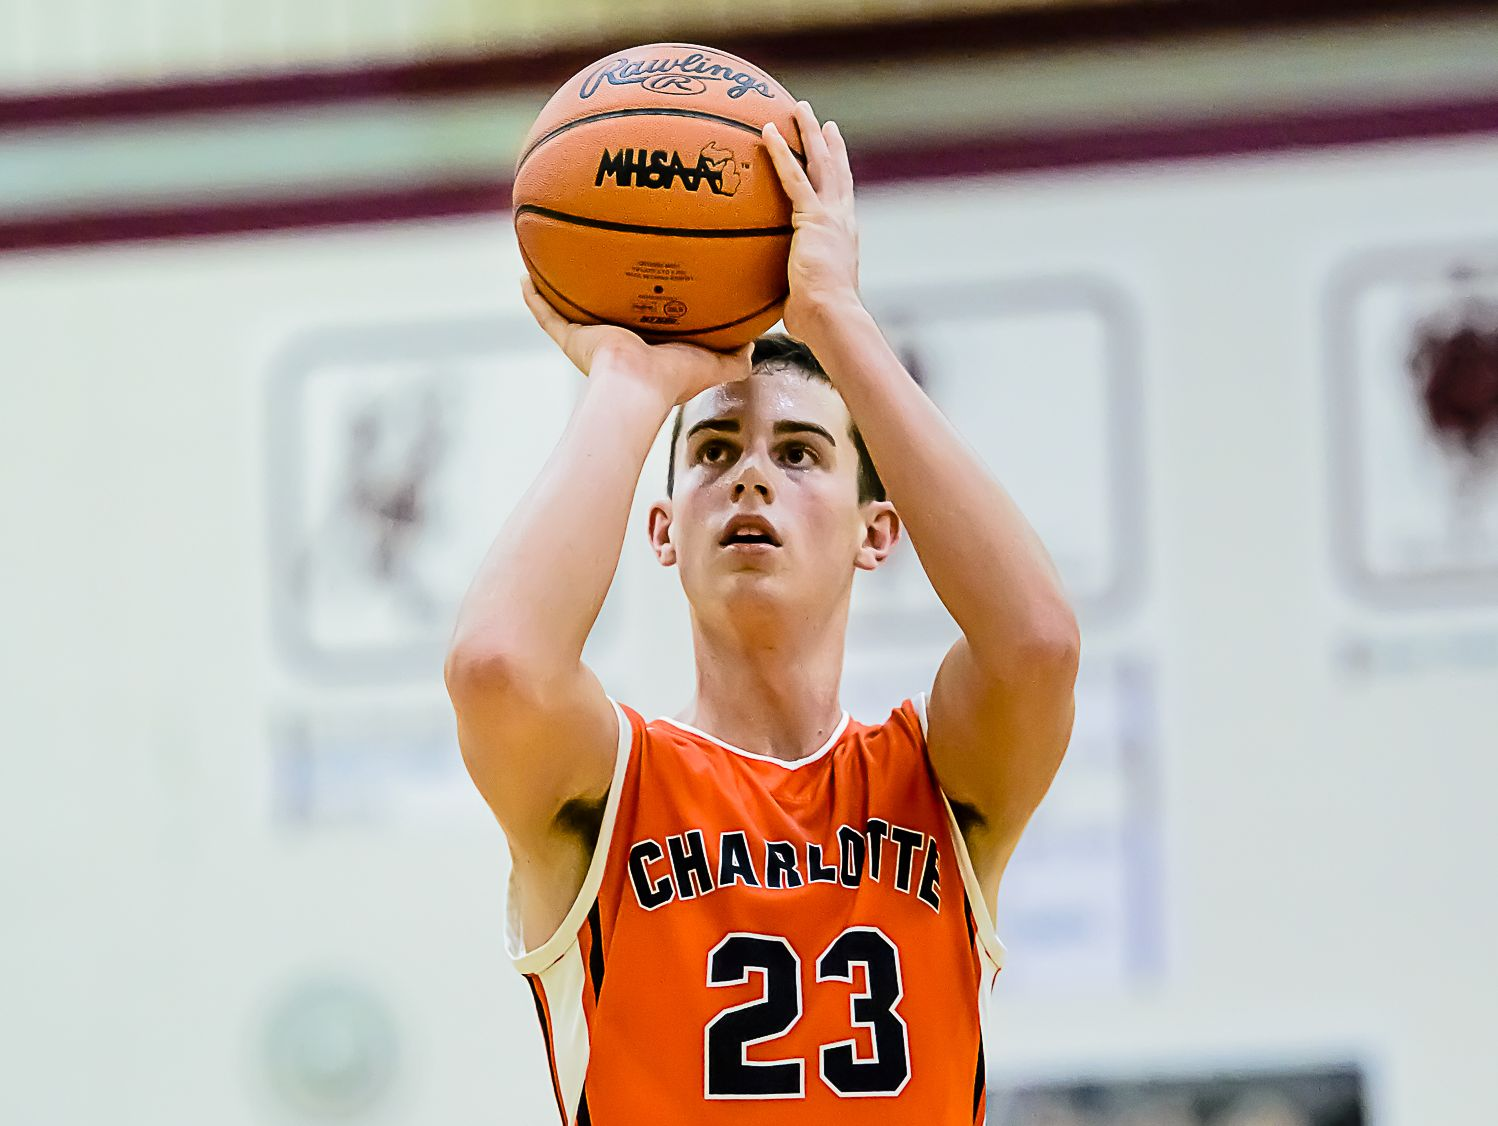 Charlotte's Kyle Peterson is one of the Lansing area's top scorers.